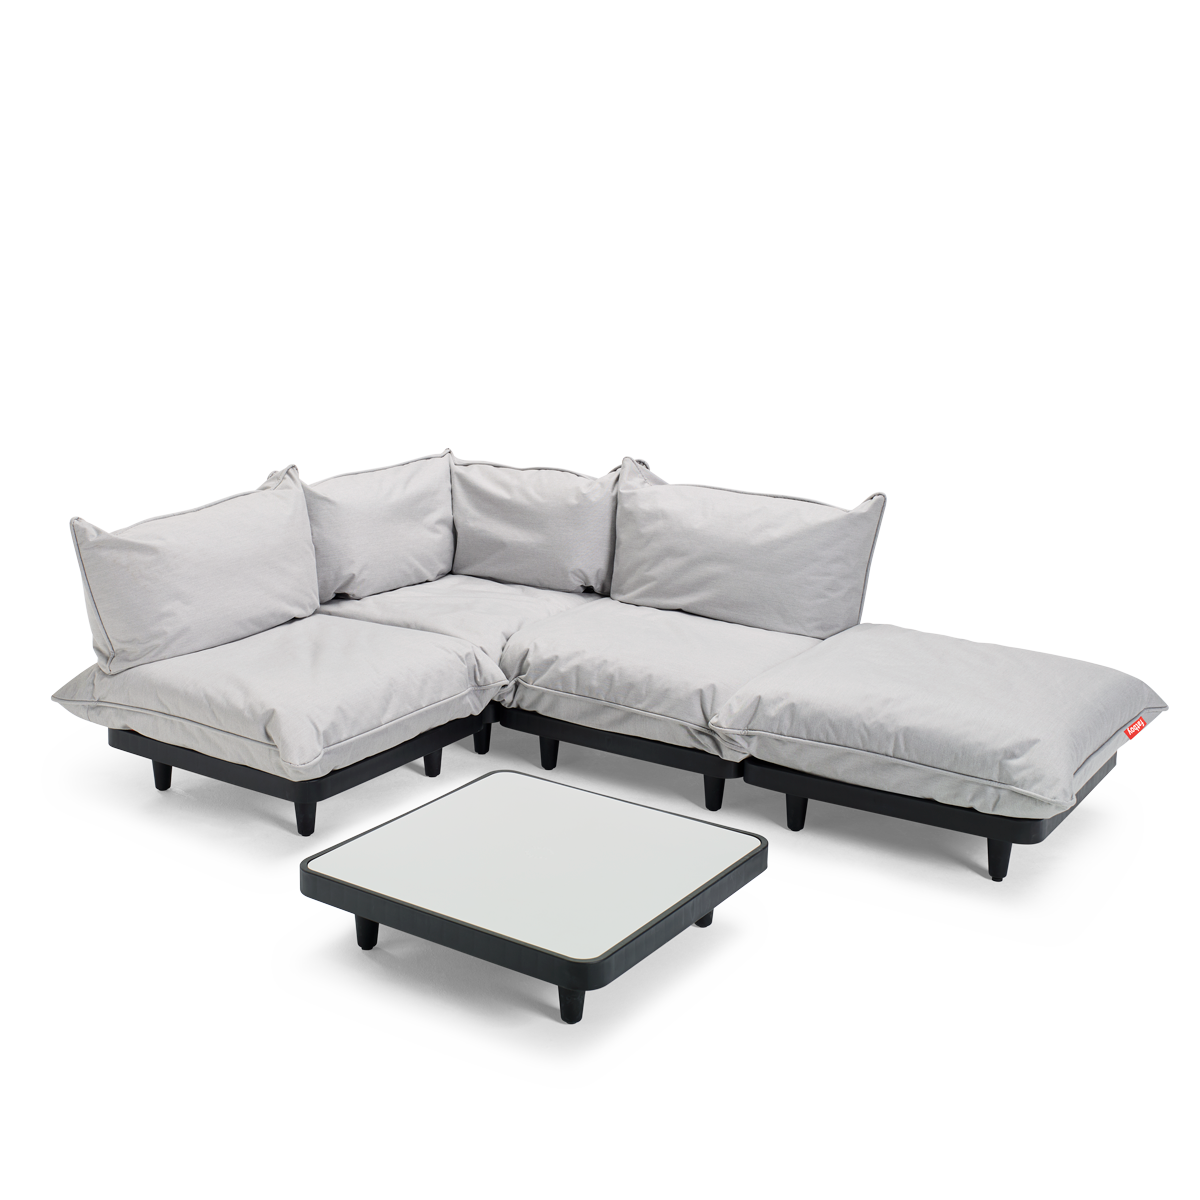 Paletti Modulair Lounge System For